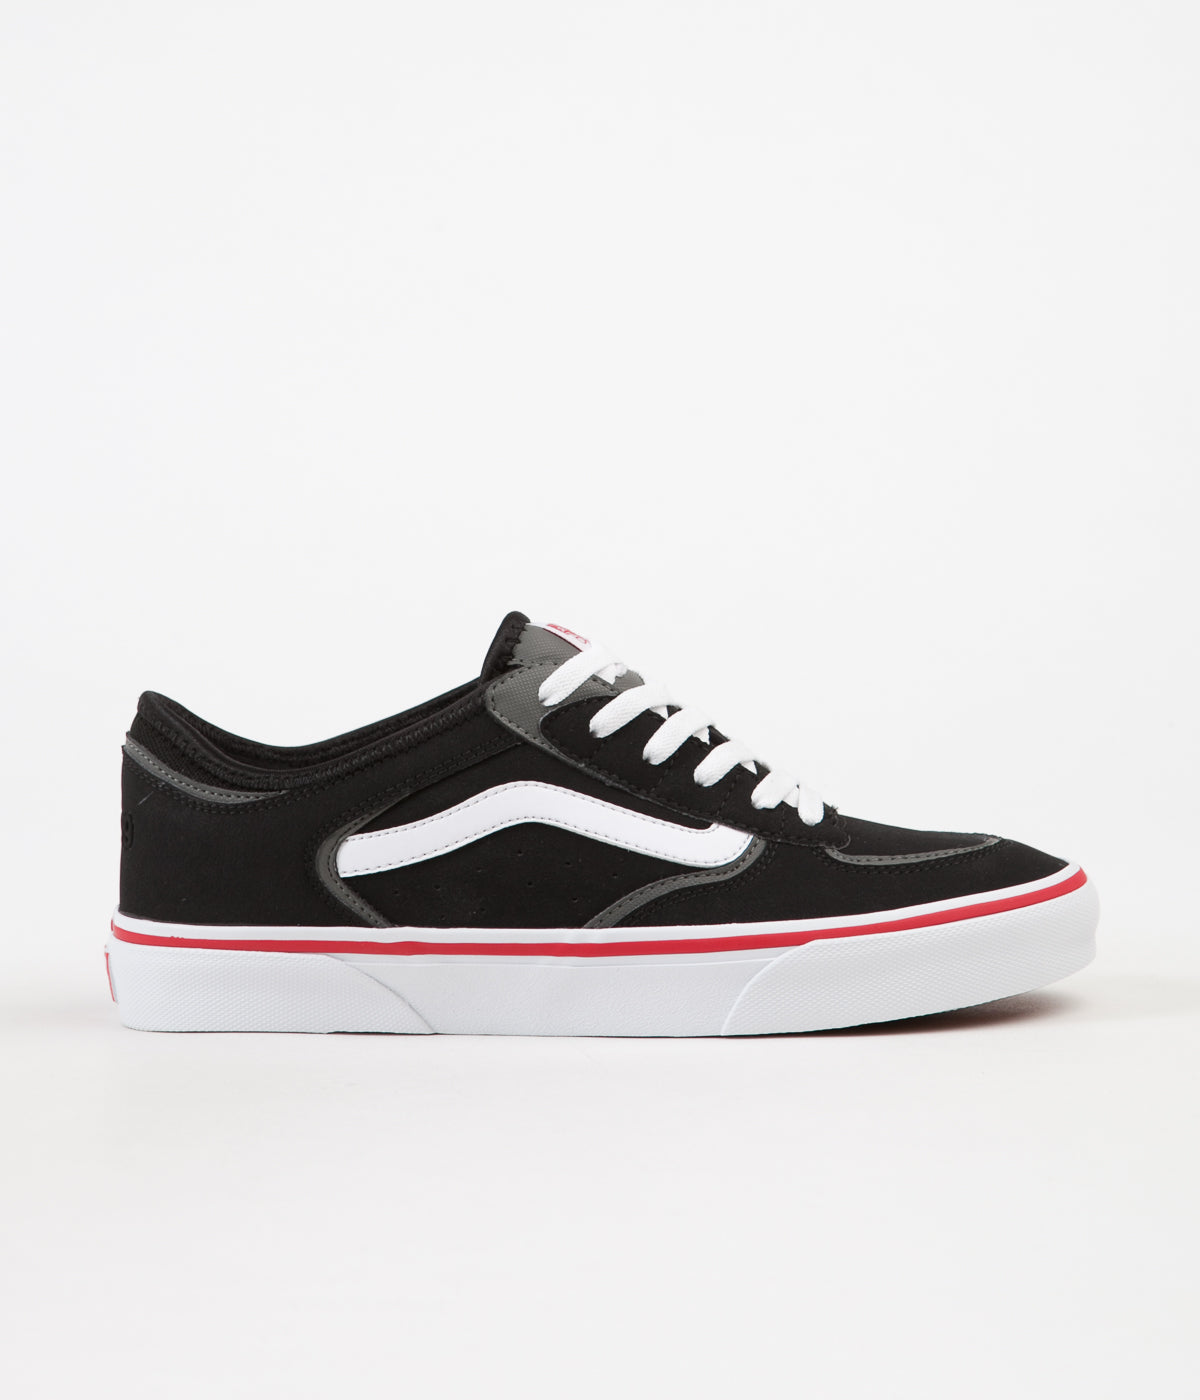 cd6293978f ... Vans Rowley Classic LX Shoes - Black   White   Red ...